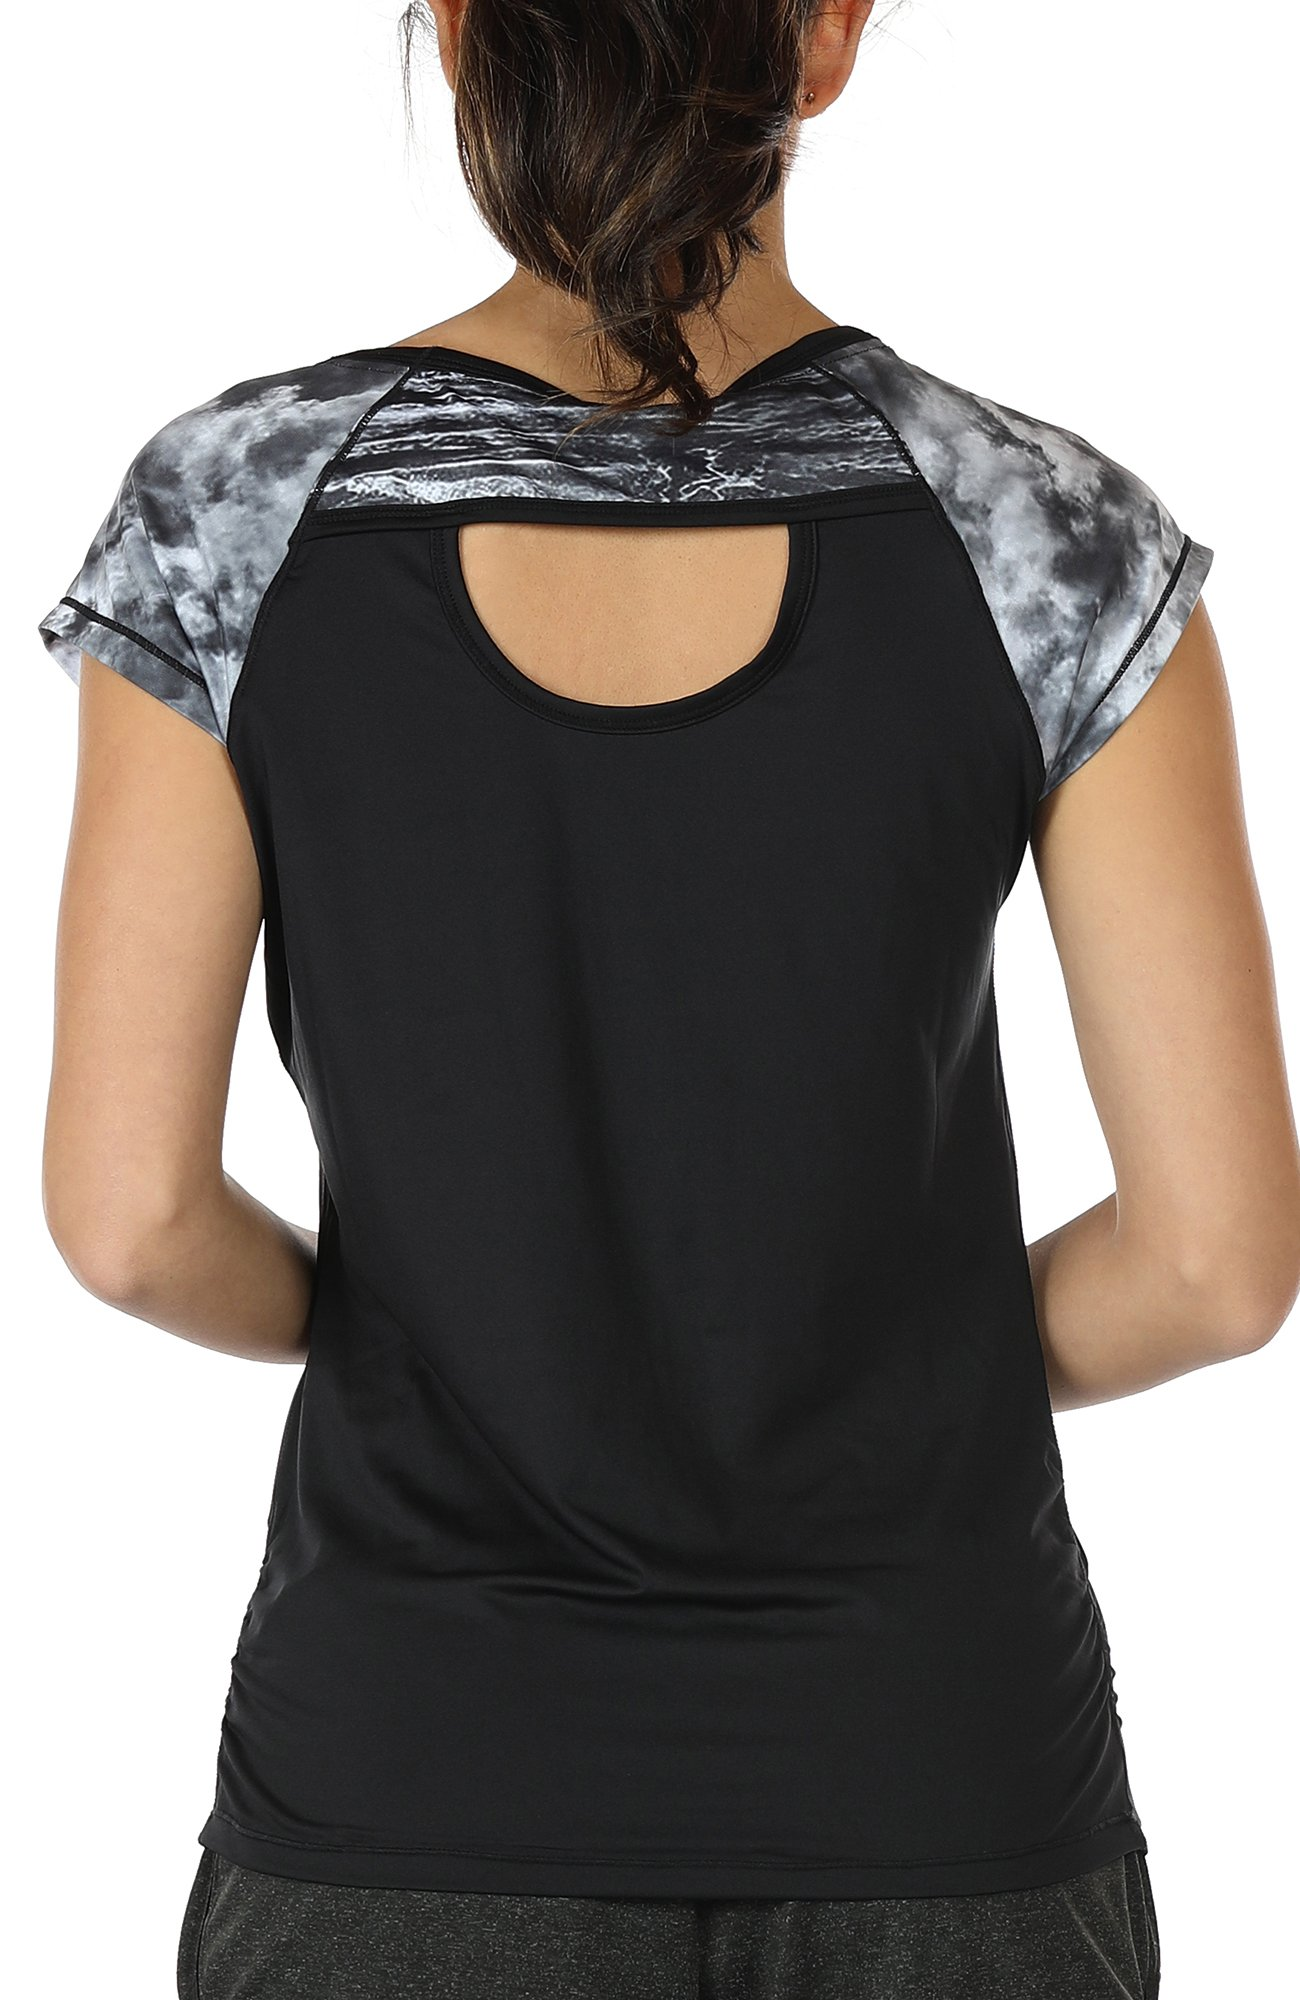 icyzone Workout Running Shirts for Women - Fitness Gym Yoga Exercise Short Sleeve T Shirts Open Back Tops (L, Storm/Black)